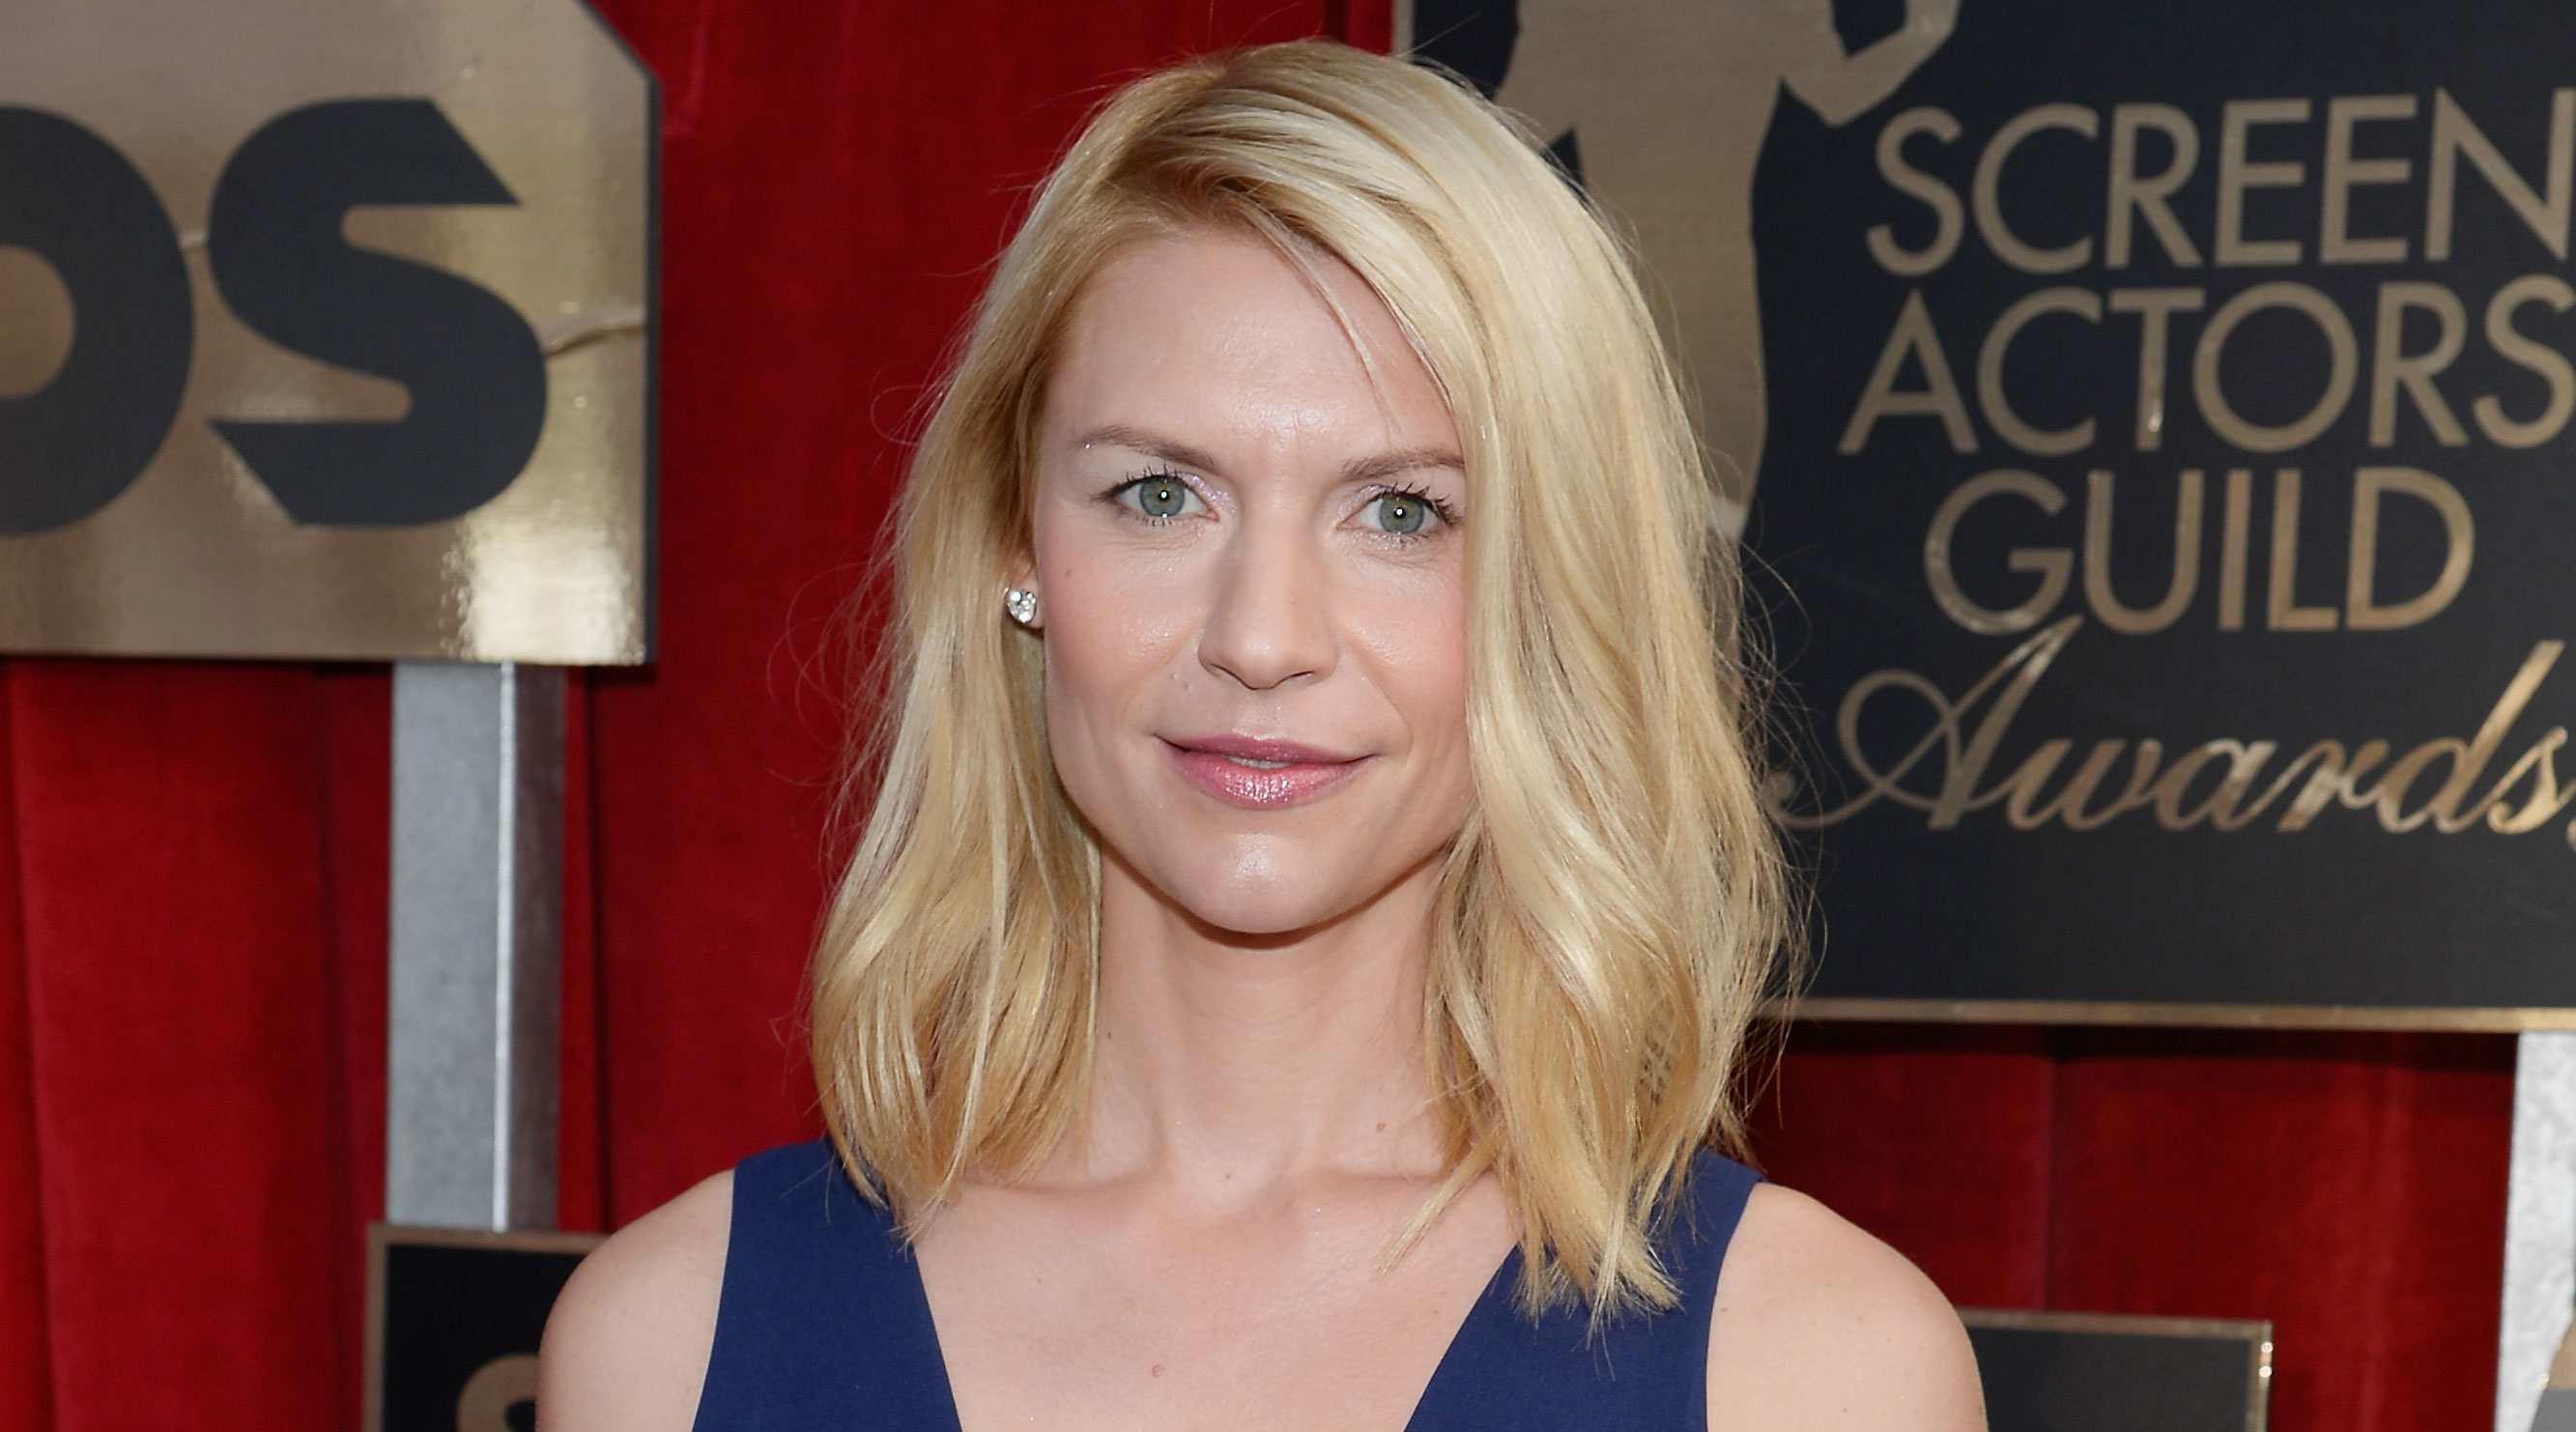 Claire Danes is Rooting for Her 'Romeo + Juliet' Co-Star ... Claire Danes Instagram